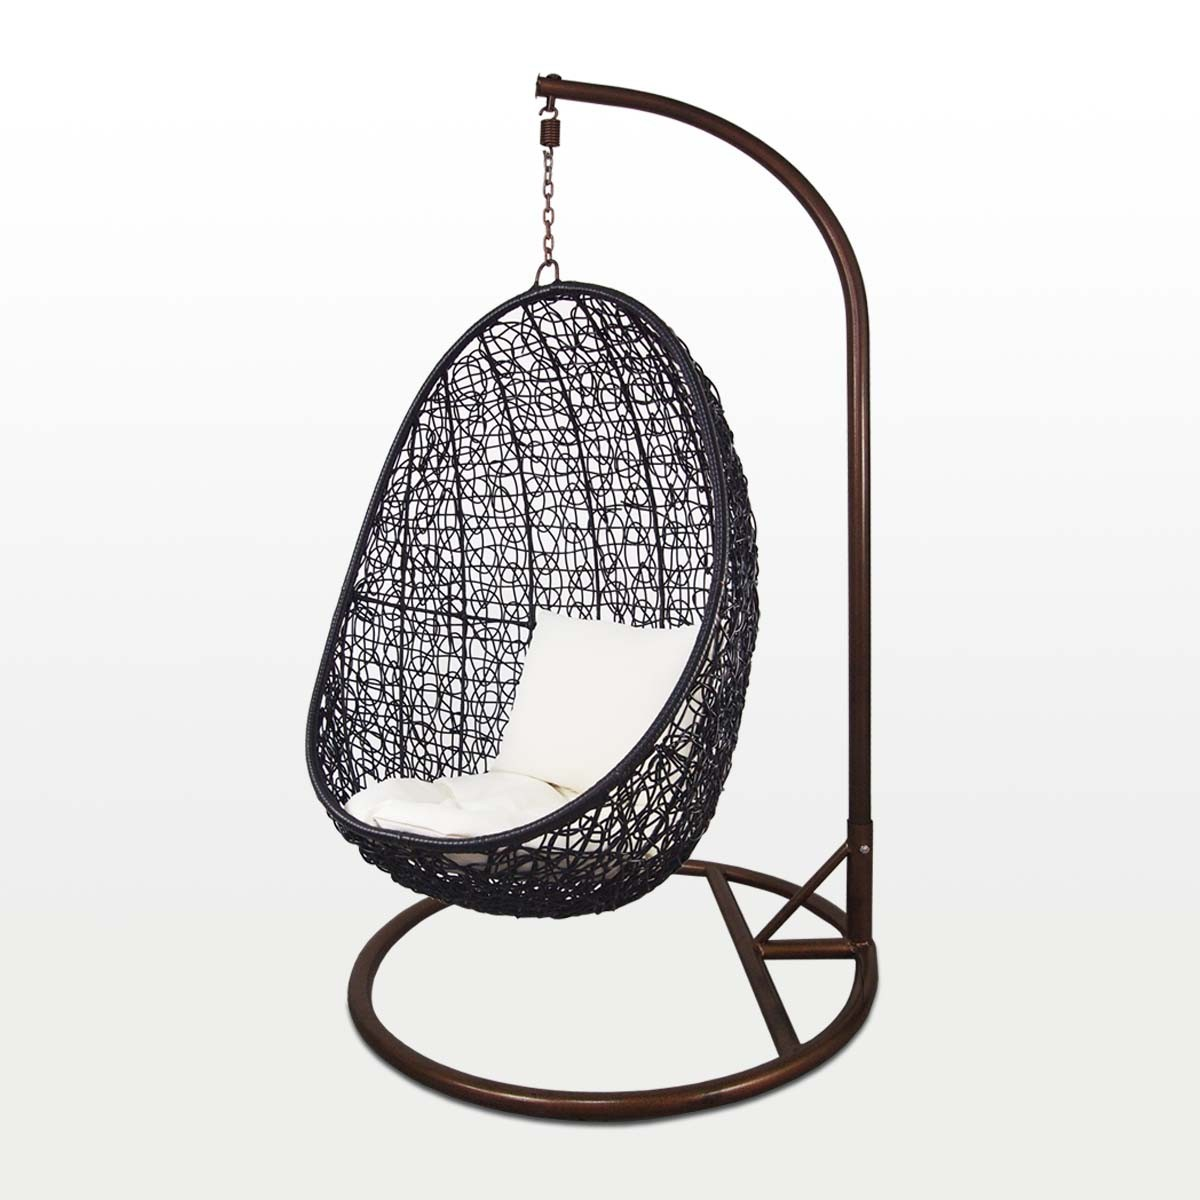 Cocoon Chair Black Cocoon Swing Chair White Cushion Furniture And Home